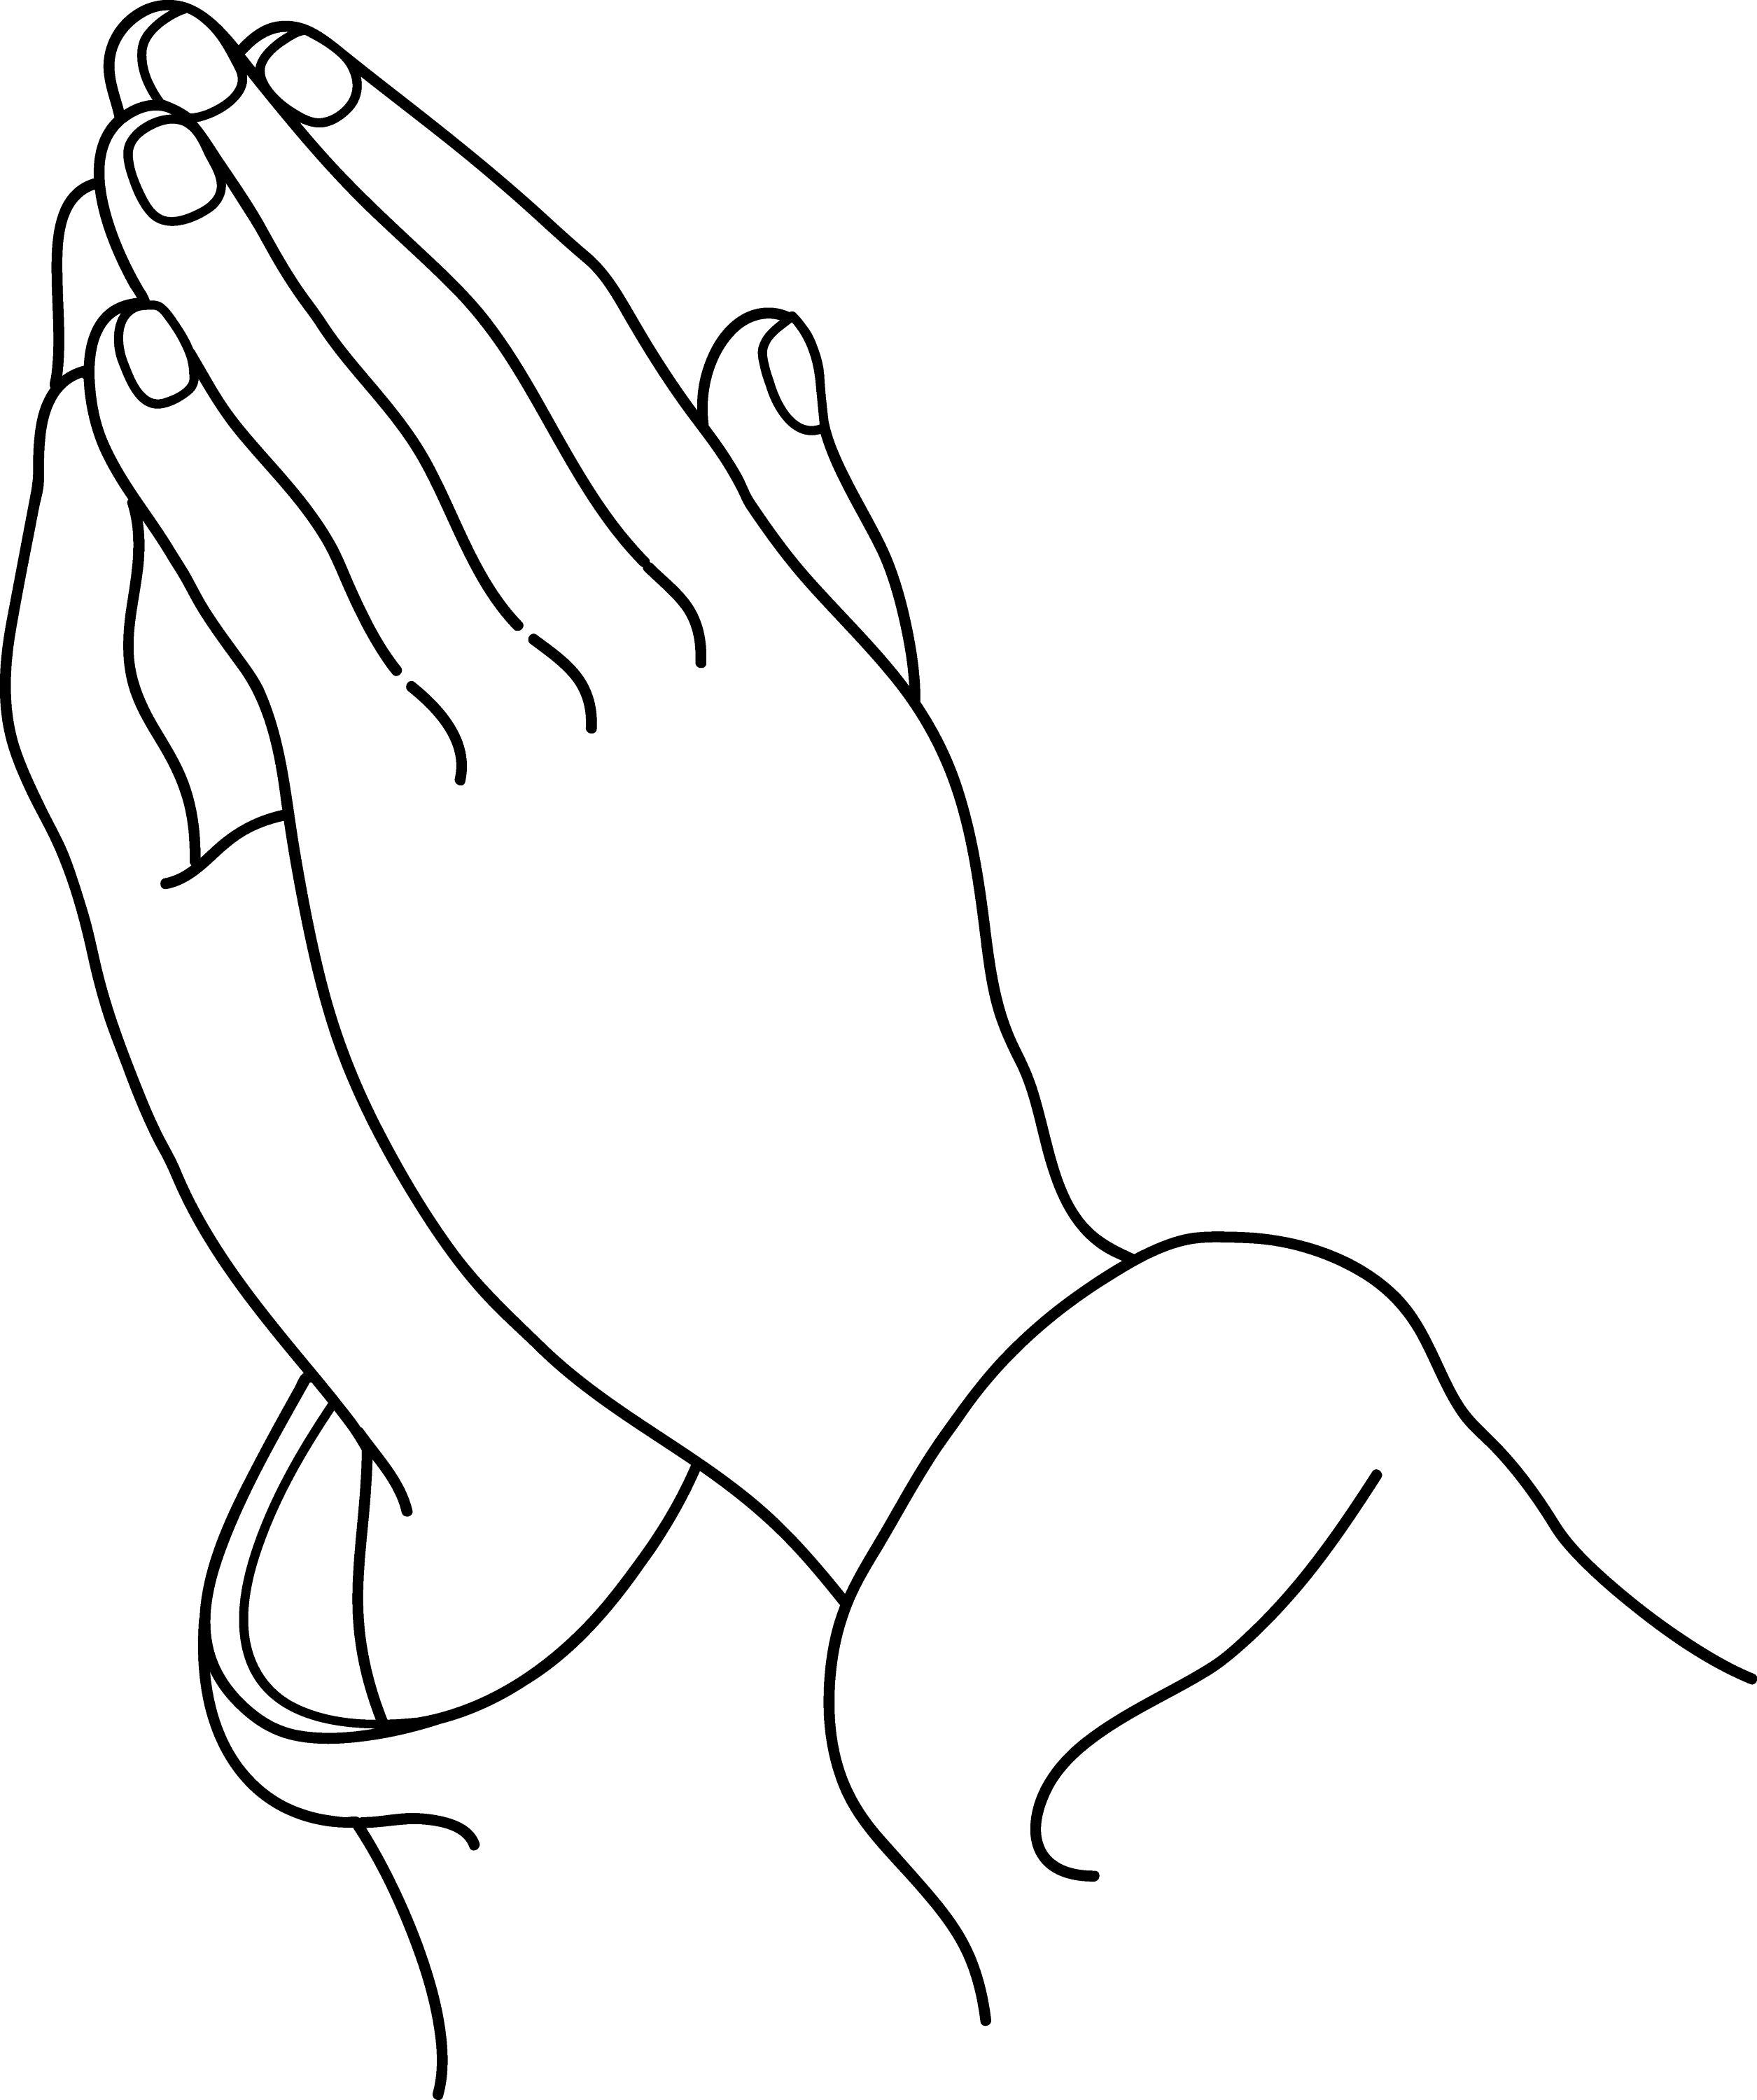 Praying Hands Line Art